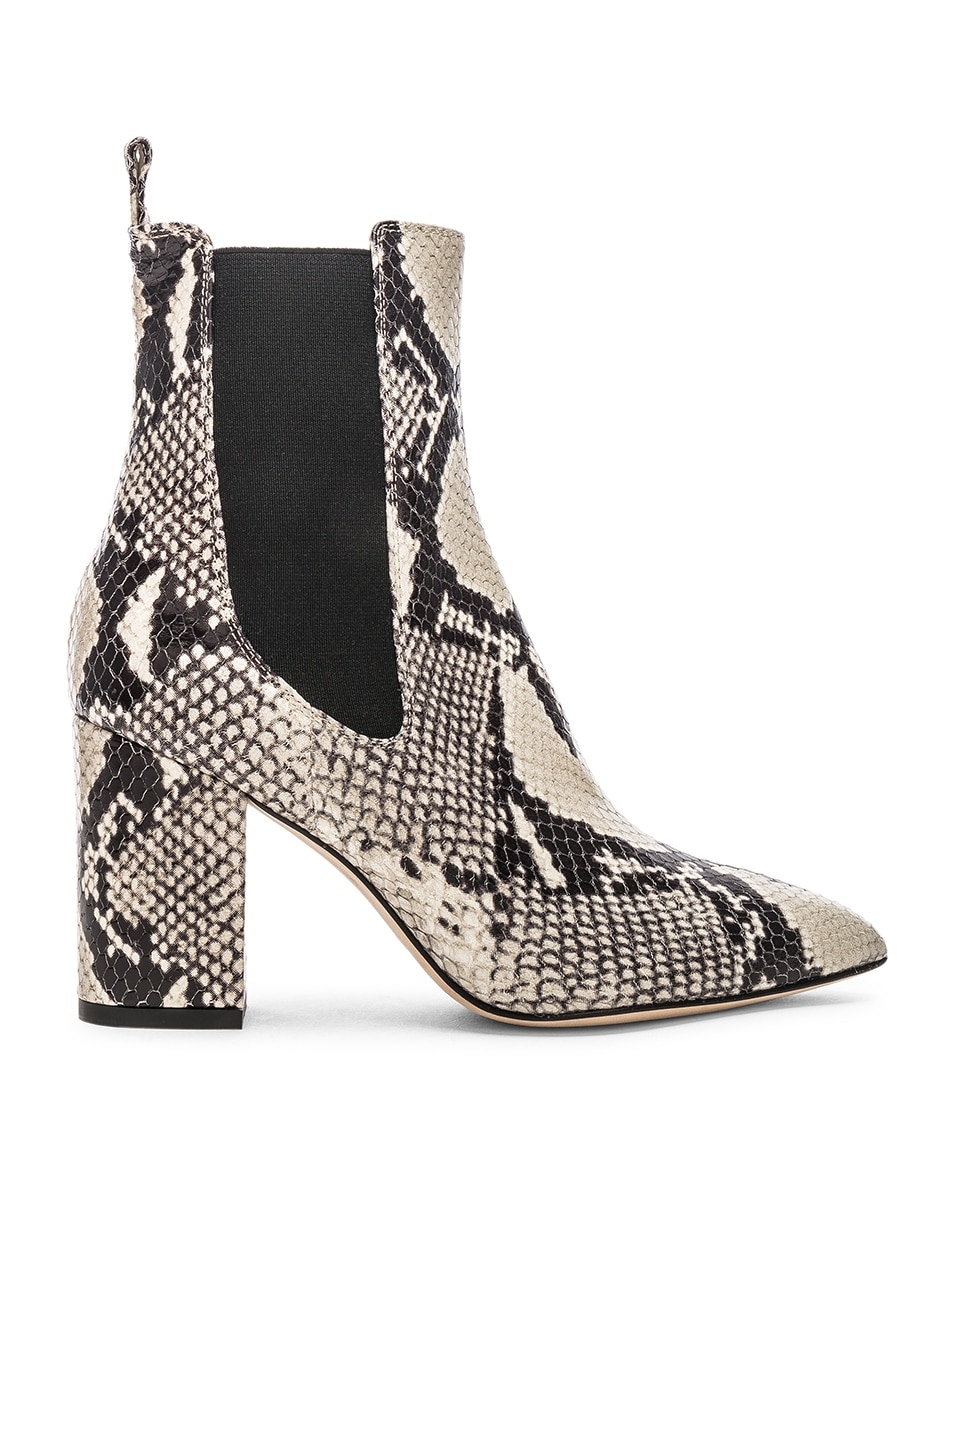 Image 1 of Paris Texas Ankle Boot in Natural Snake